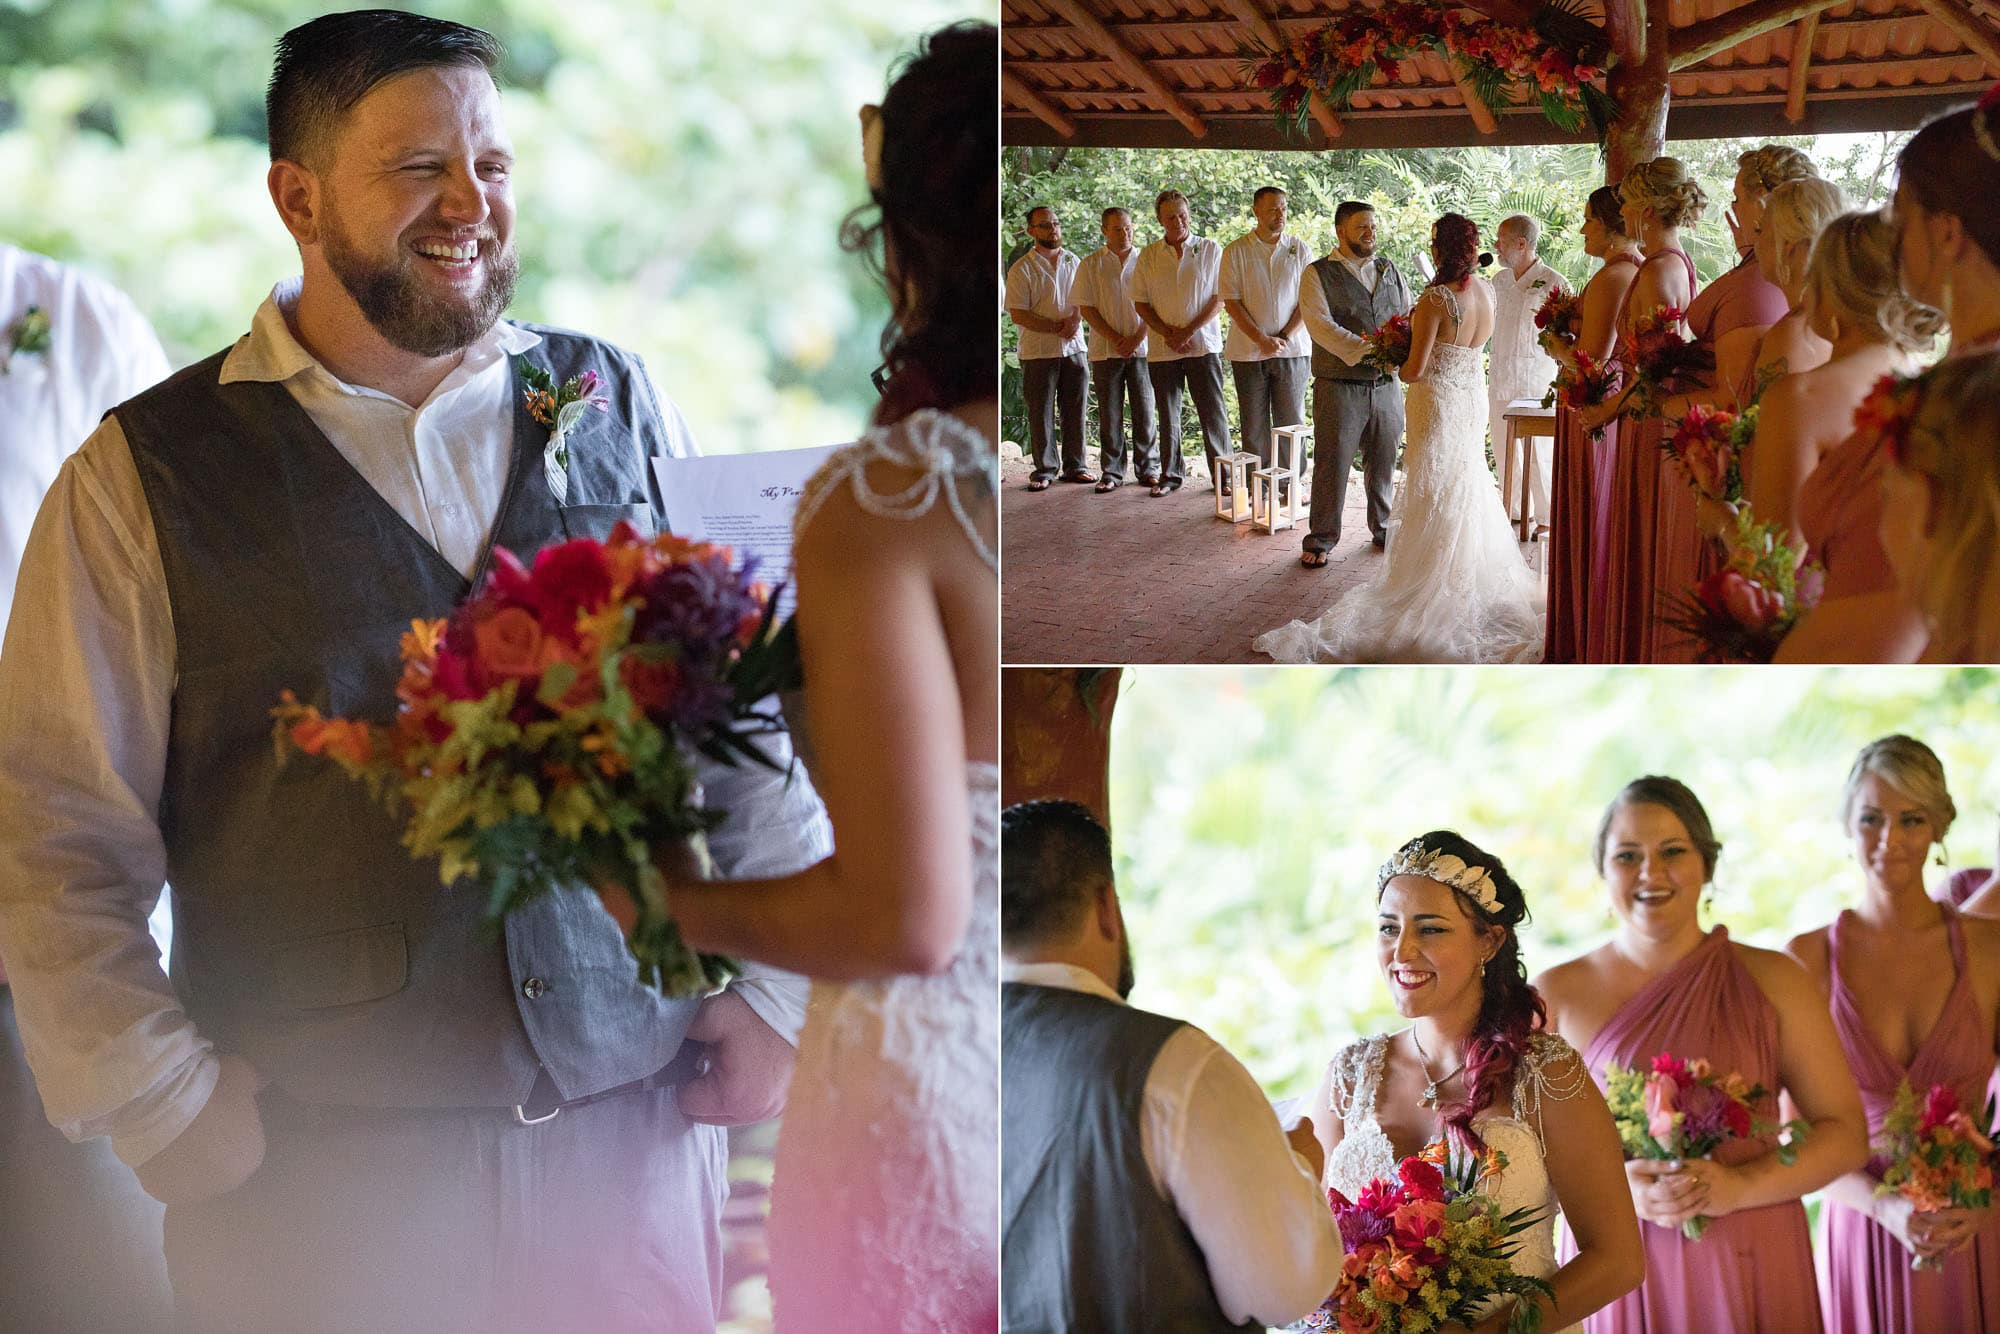 Shots from the ceremony